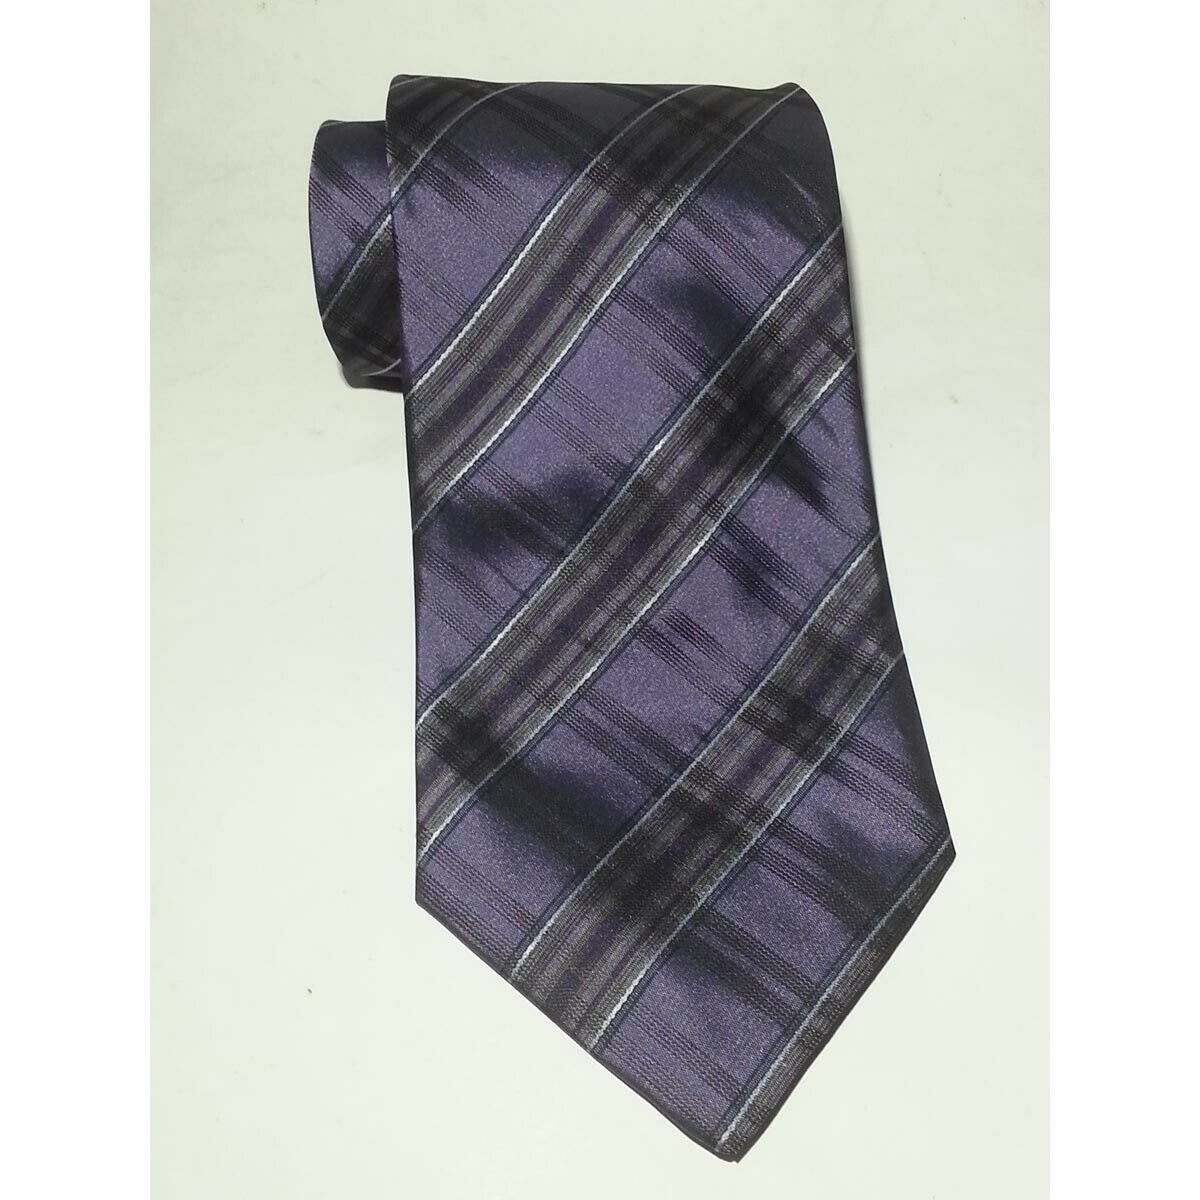 Sale $15.96 https://t.co/1IhtKkOLQZ Conwell Men Dress #tie Made in #Italy Polyester 60 https://t.co/LDSy0kgTs3